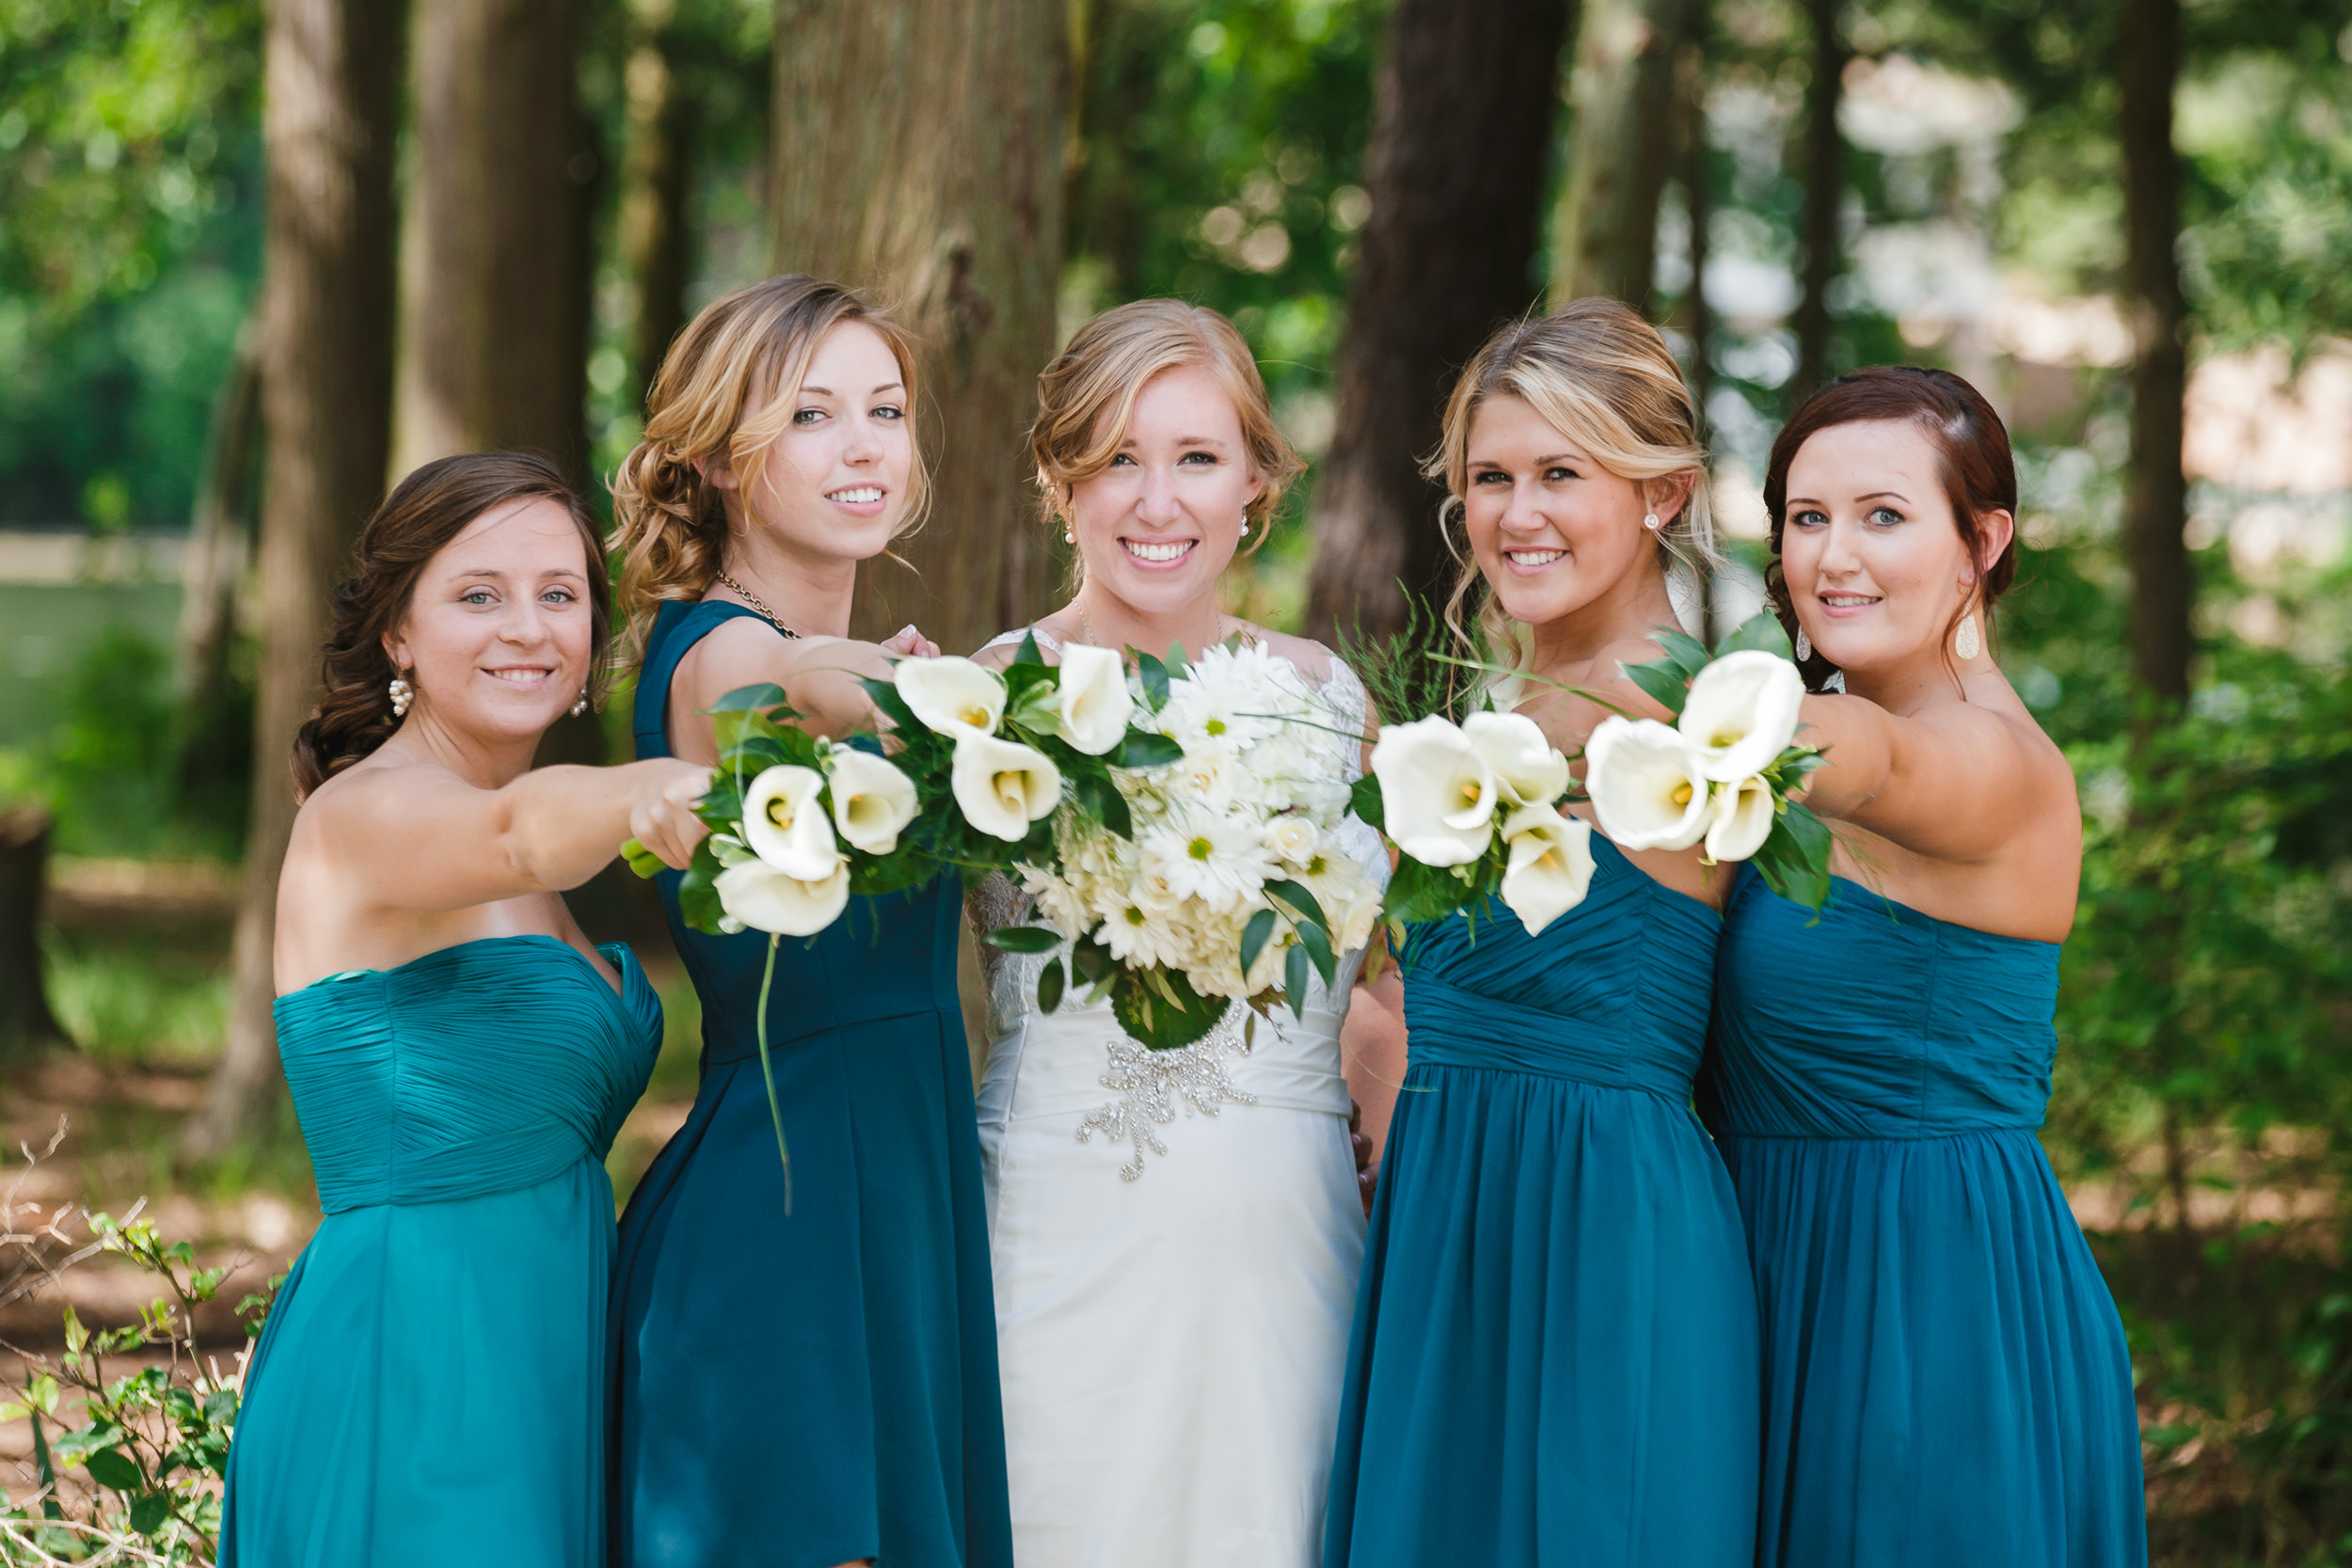 wedding bridal party portrait america's keswick whiting nj